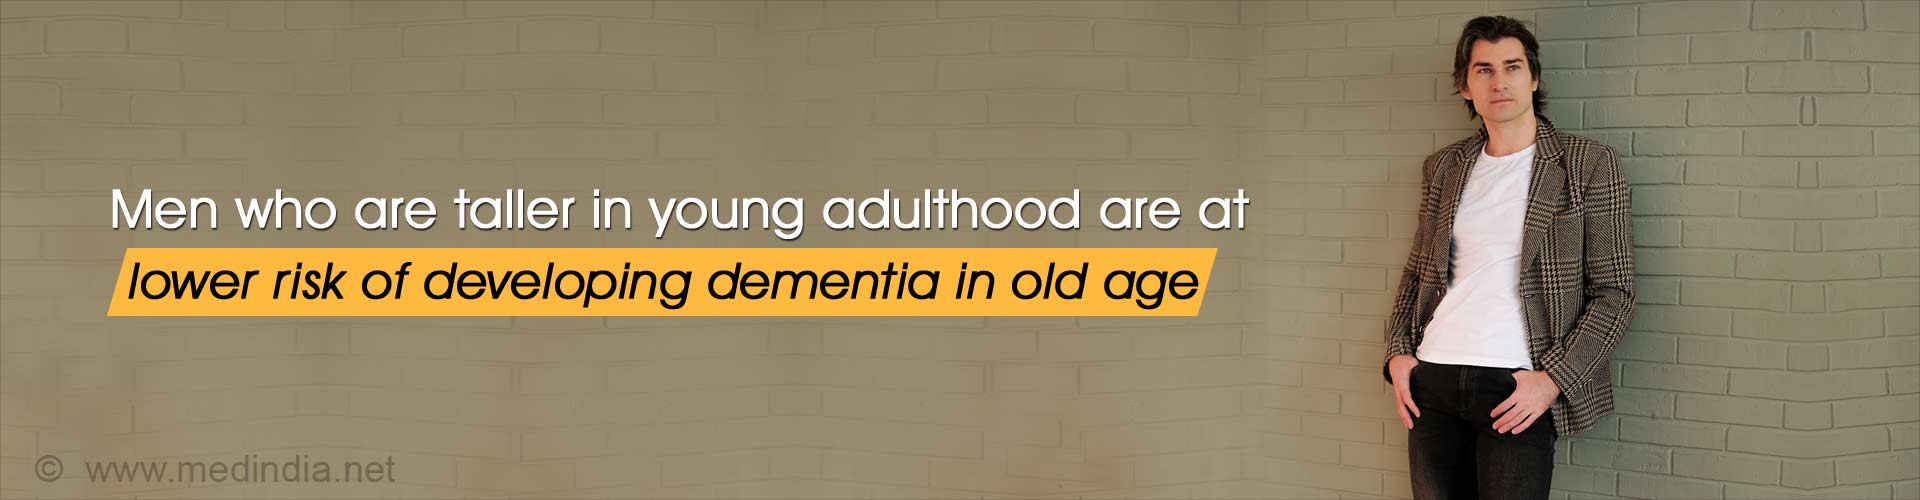 Men who are taller in young adulthood are at lower risk of developing dementia in old age.